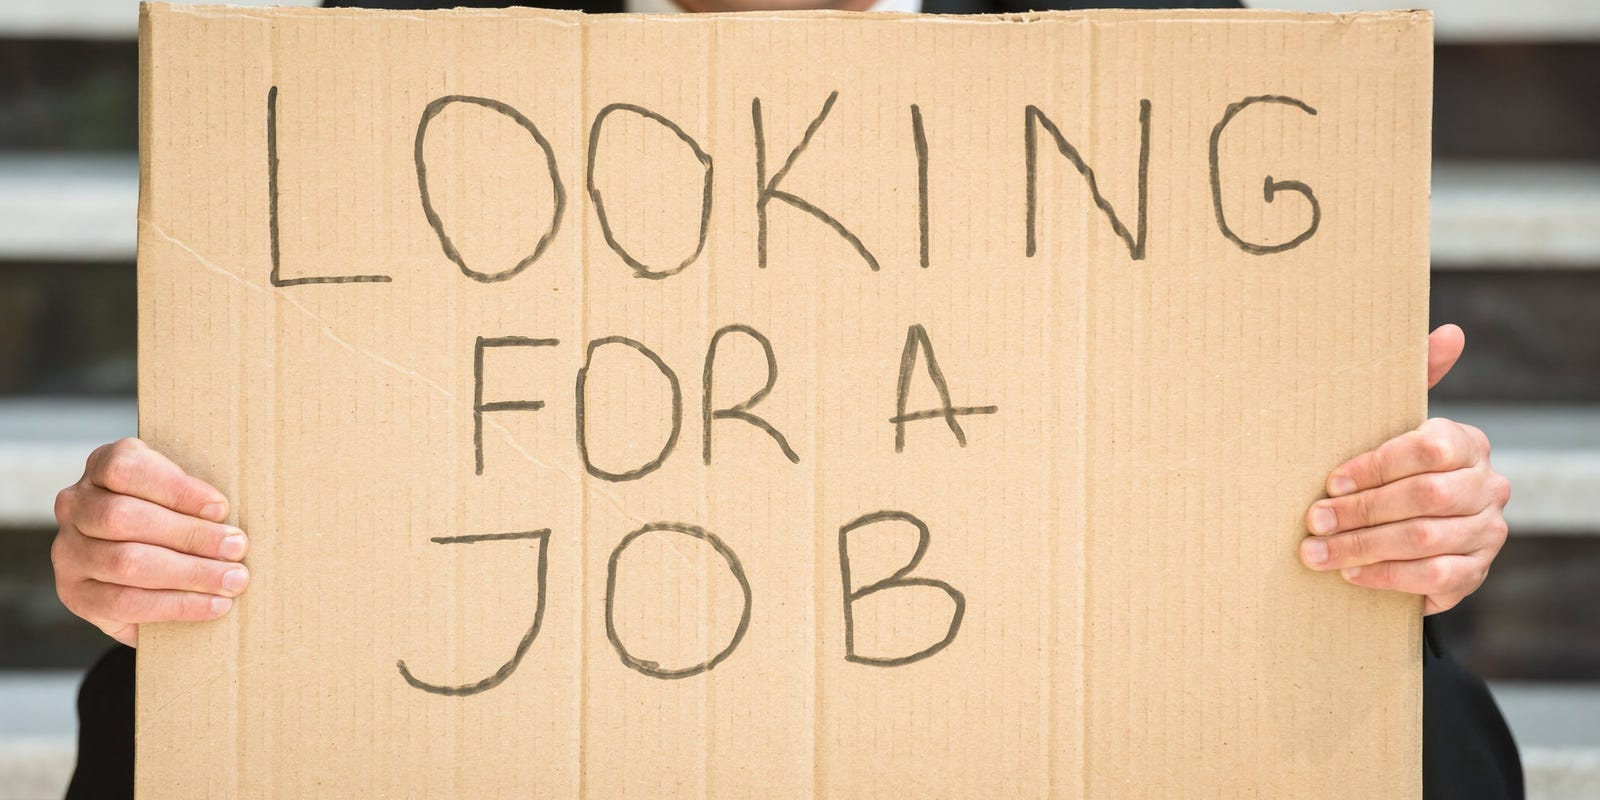 'I'm too old to find a new career': More than half of Americans fear job losses